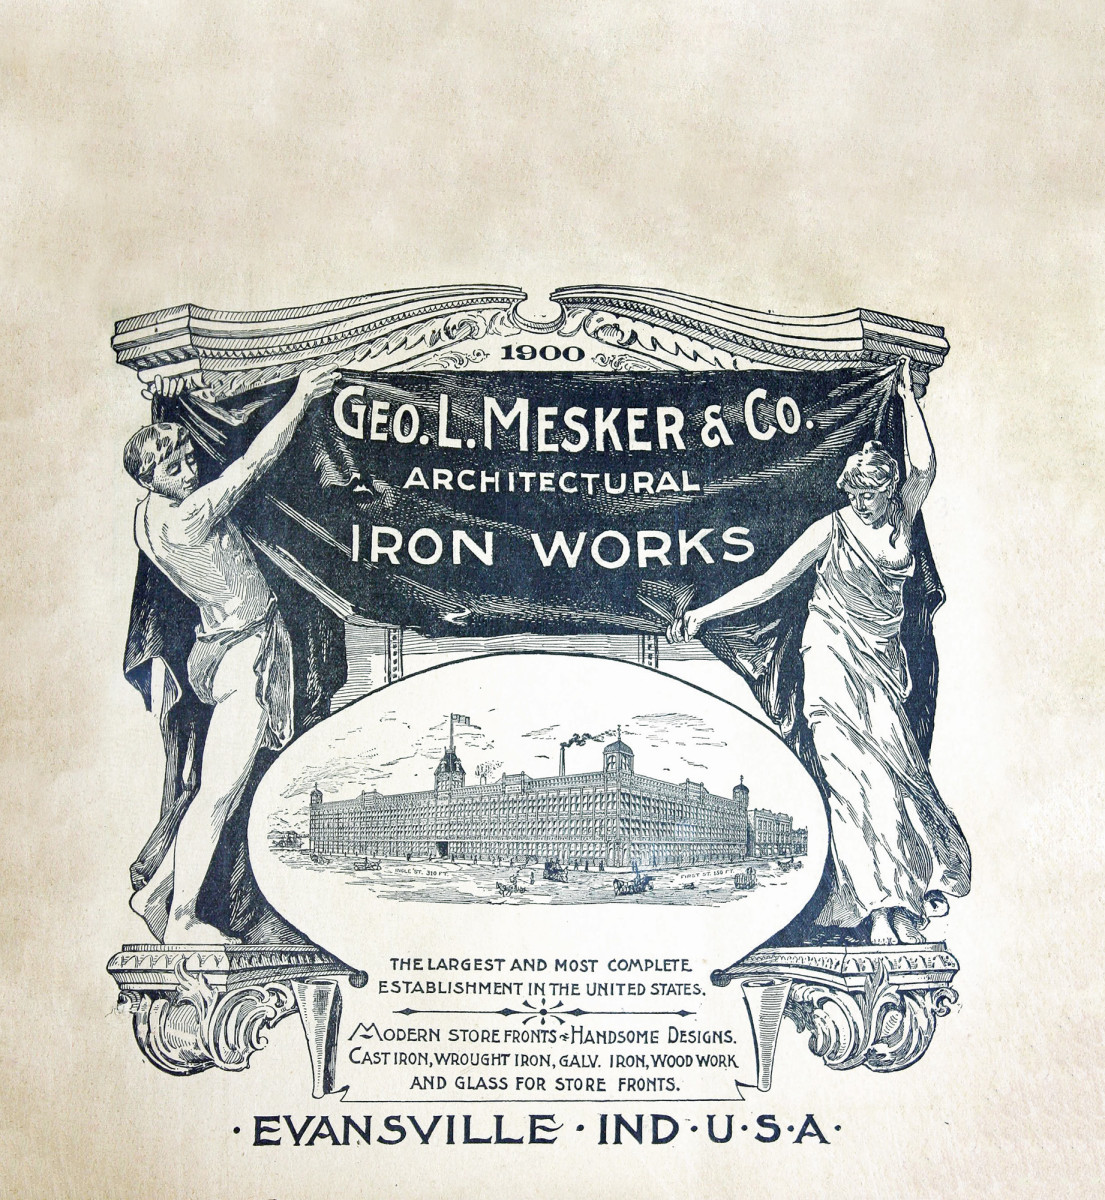 Geo. L. Mesker & Co. Architectural Iron Works